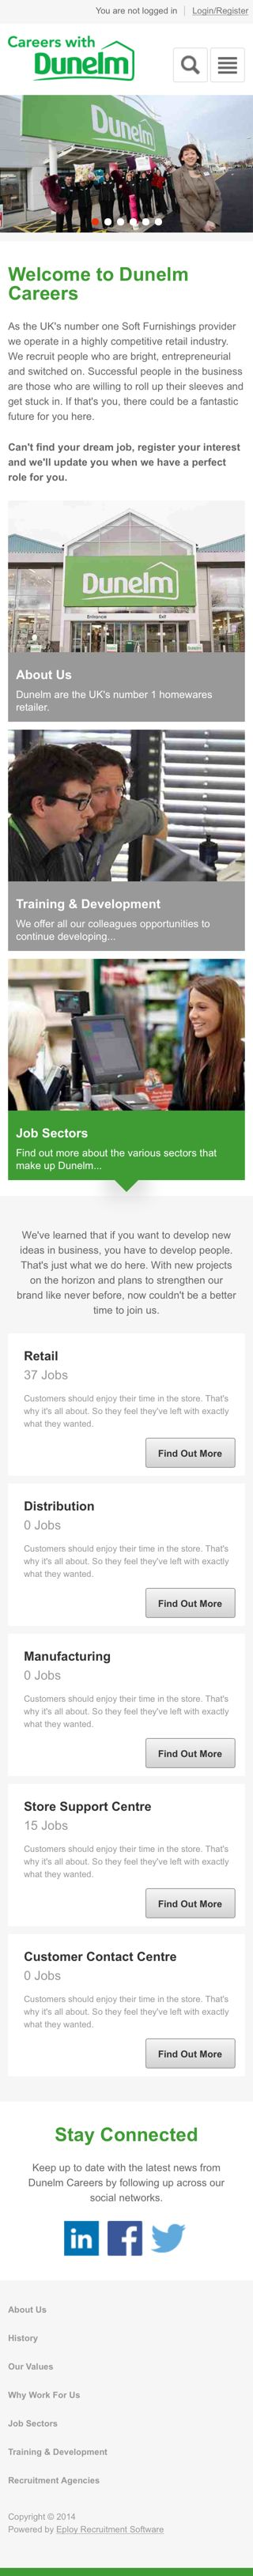 Dunelm Mill mobile-responsive careers site